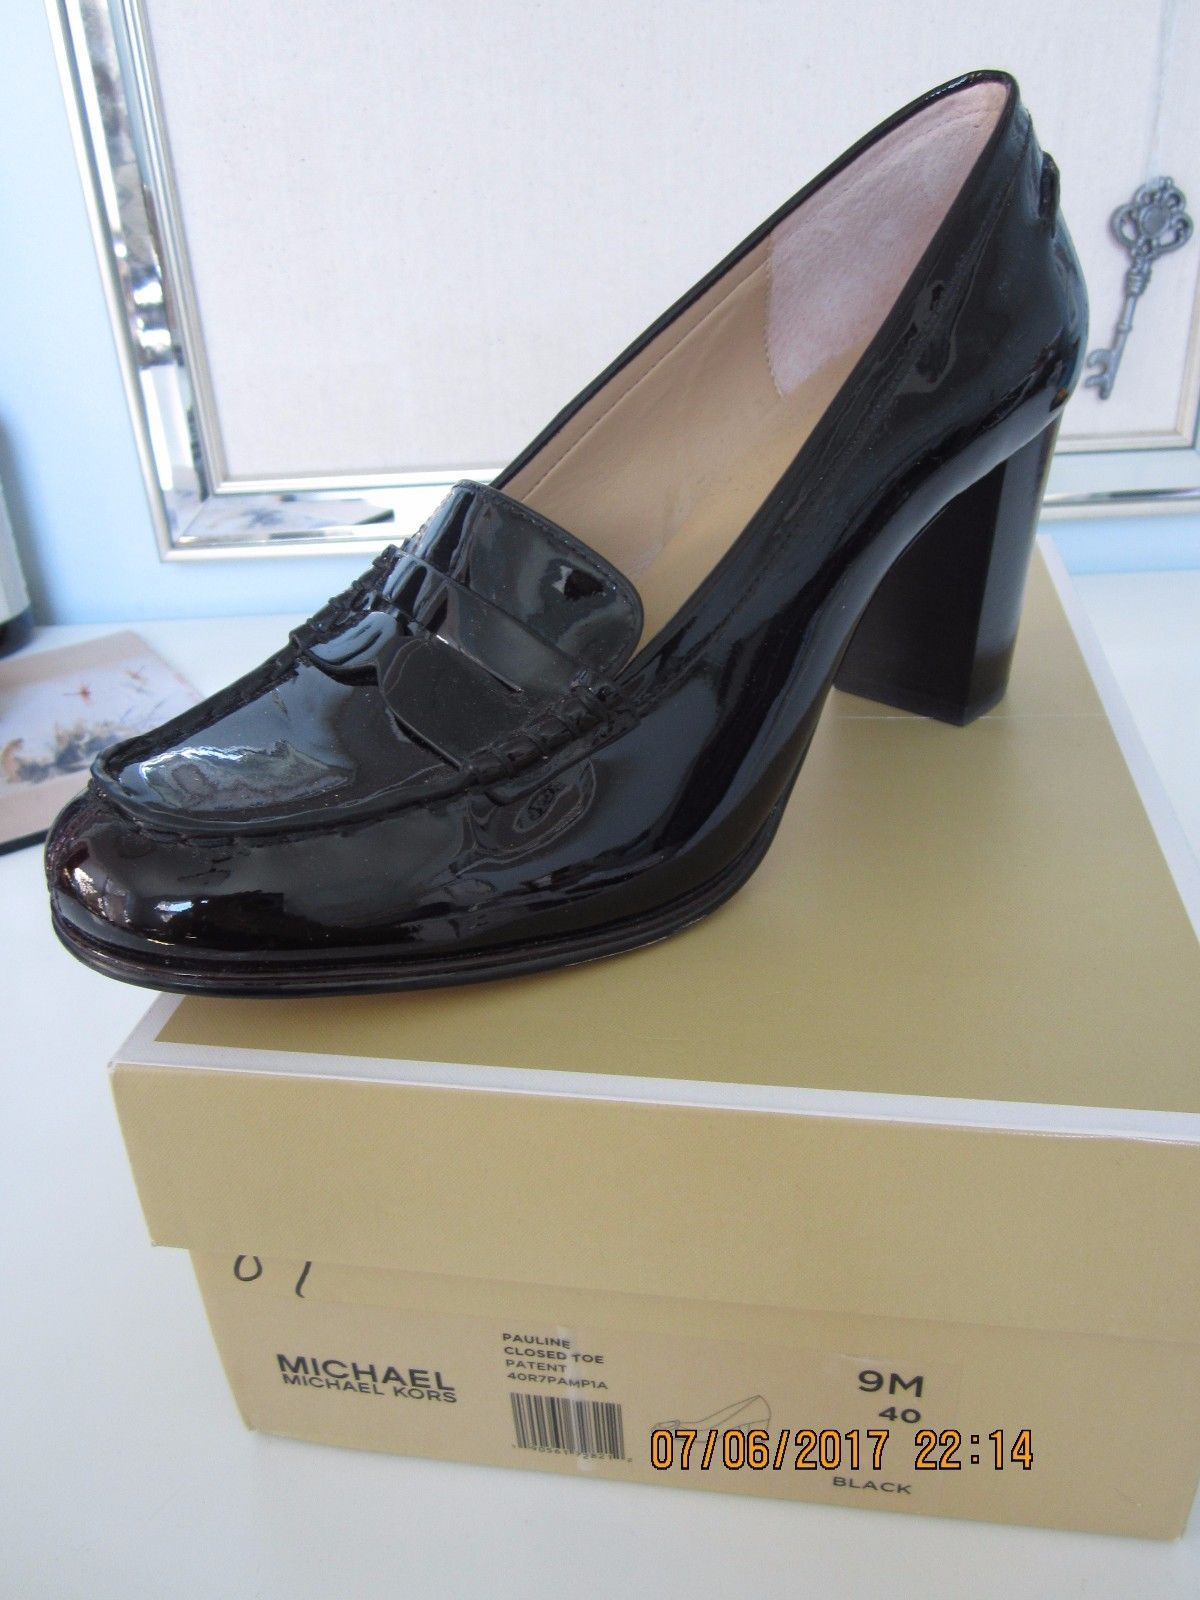 1d6fc09acd08 MICHAEL KORS Bayville Penny Loafer Pumps Patent Leather Shoes Plum 9.5 M